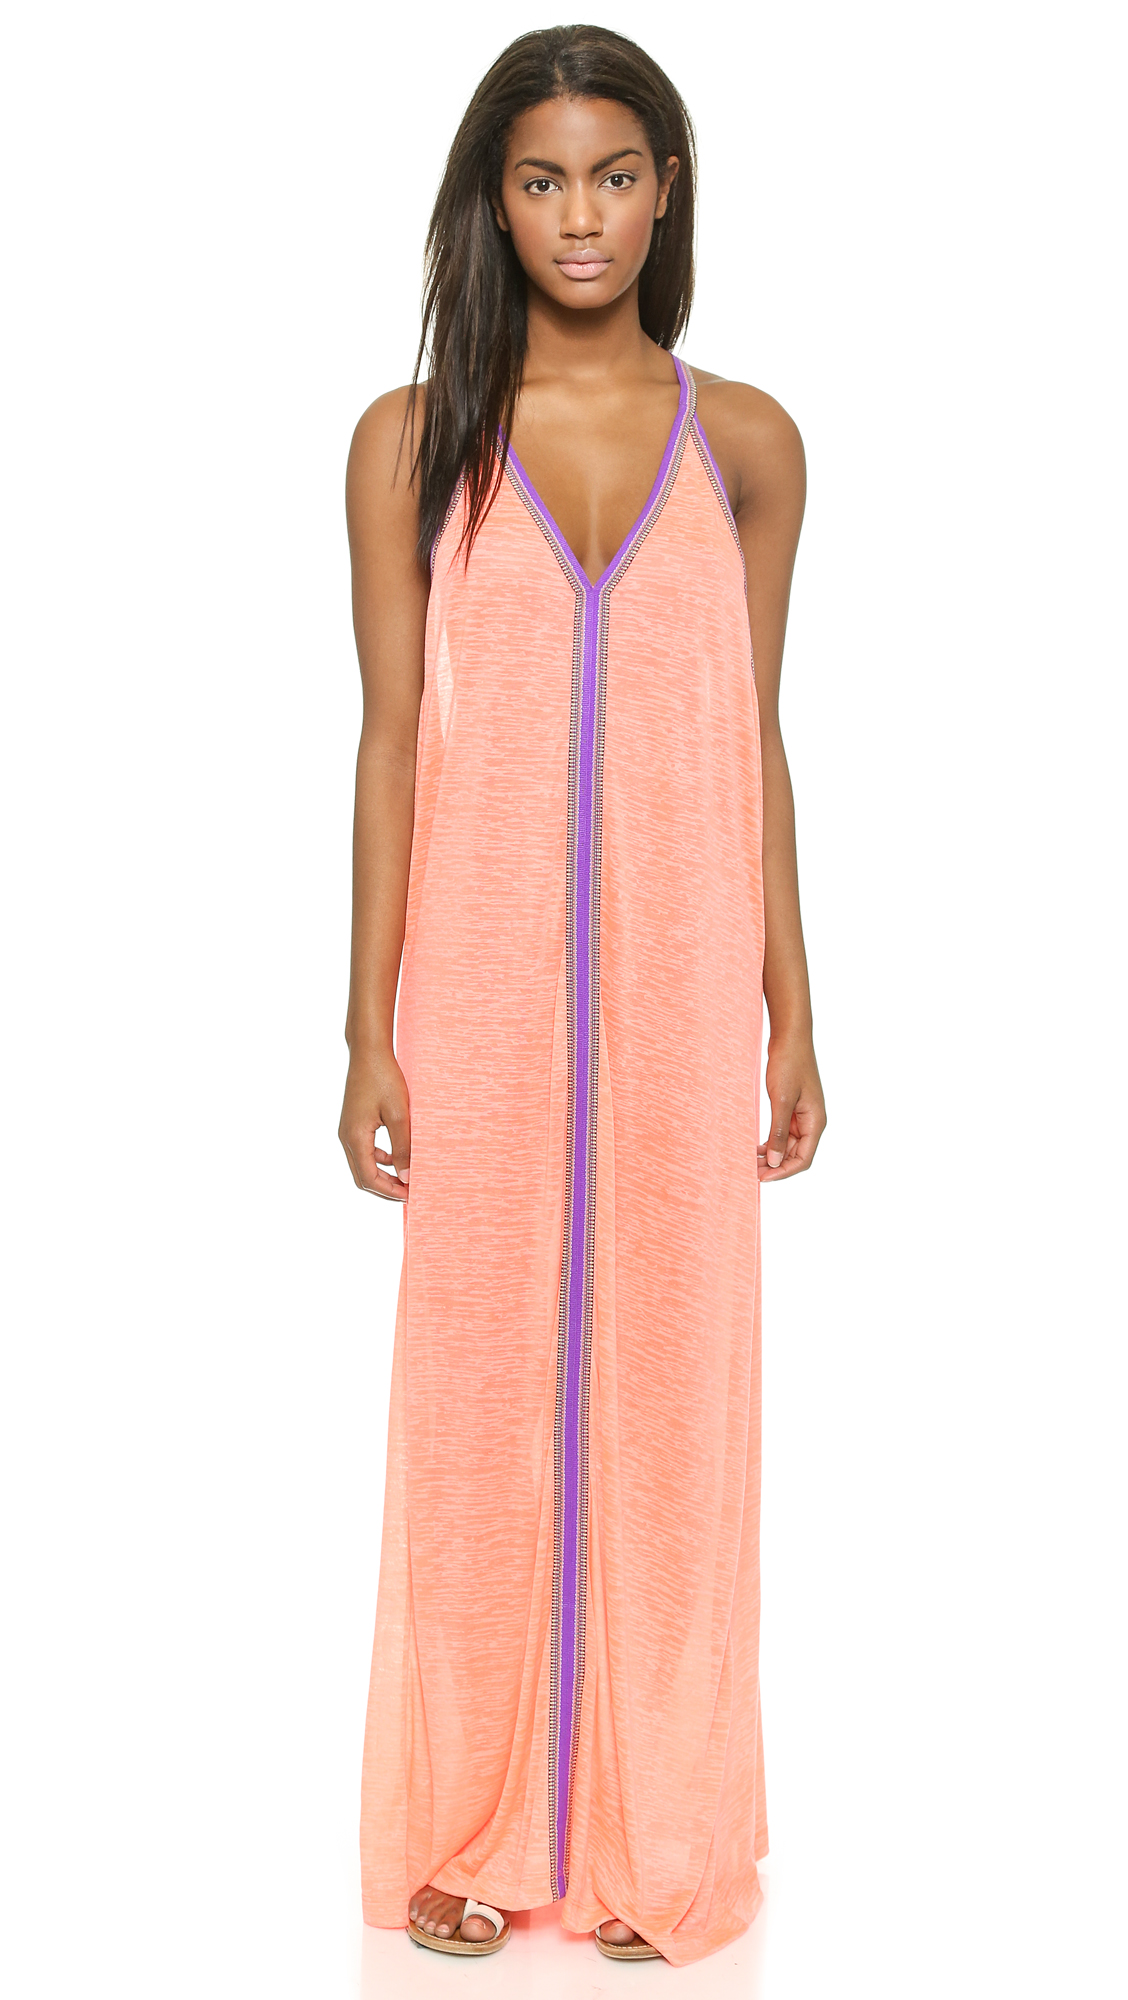 Pitusa Sun Maxi Dress - Coral